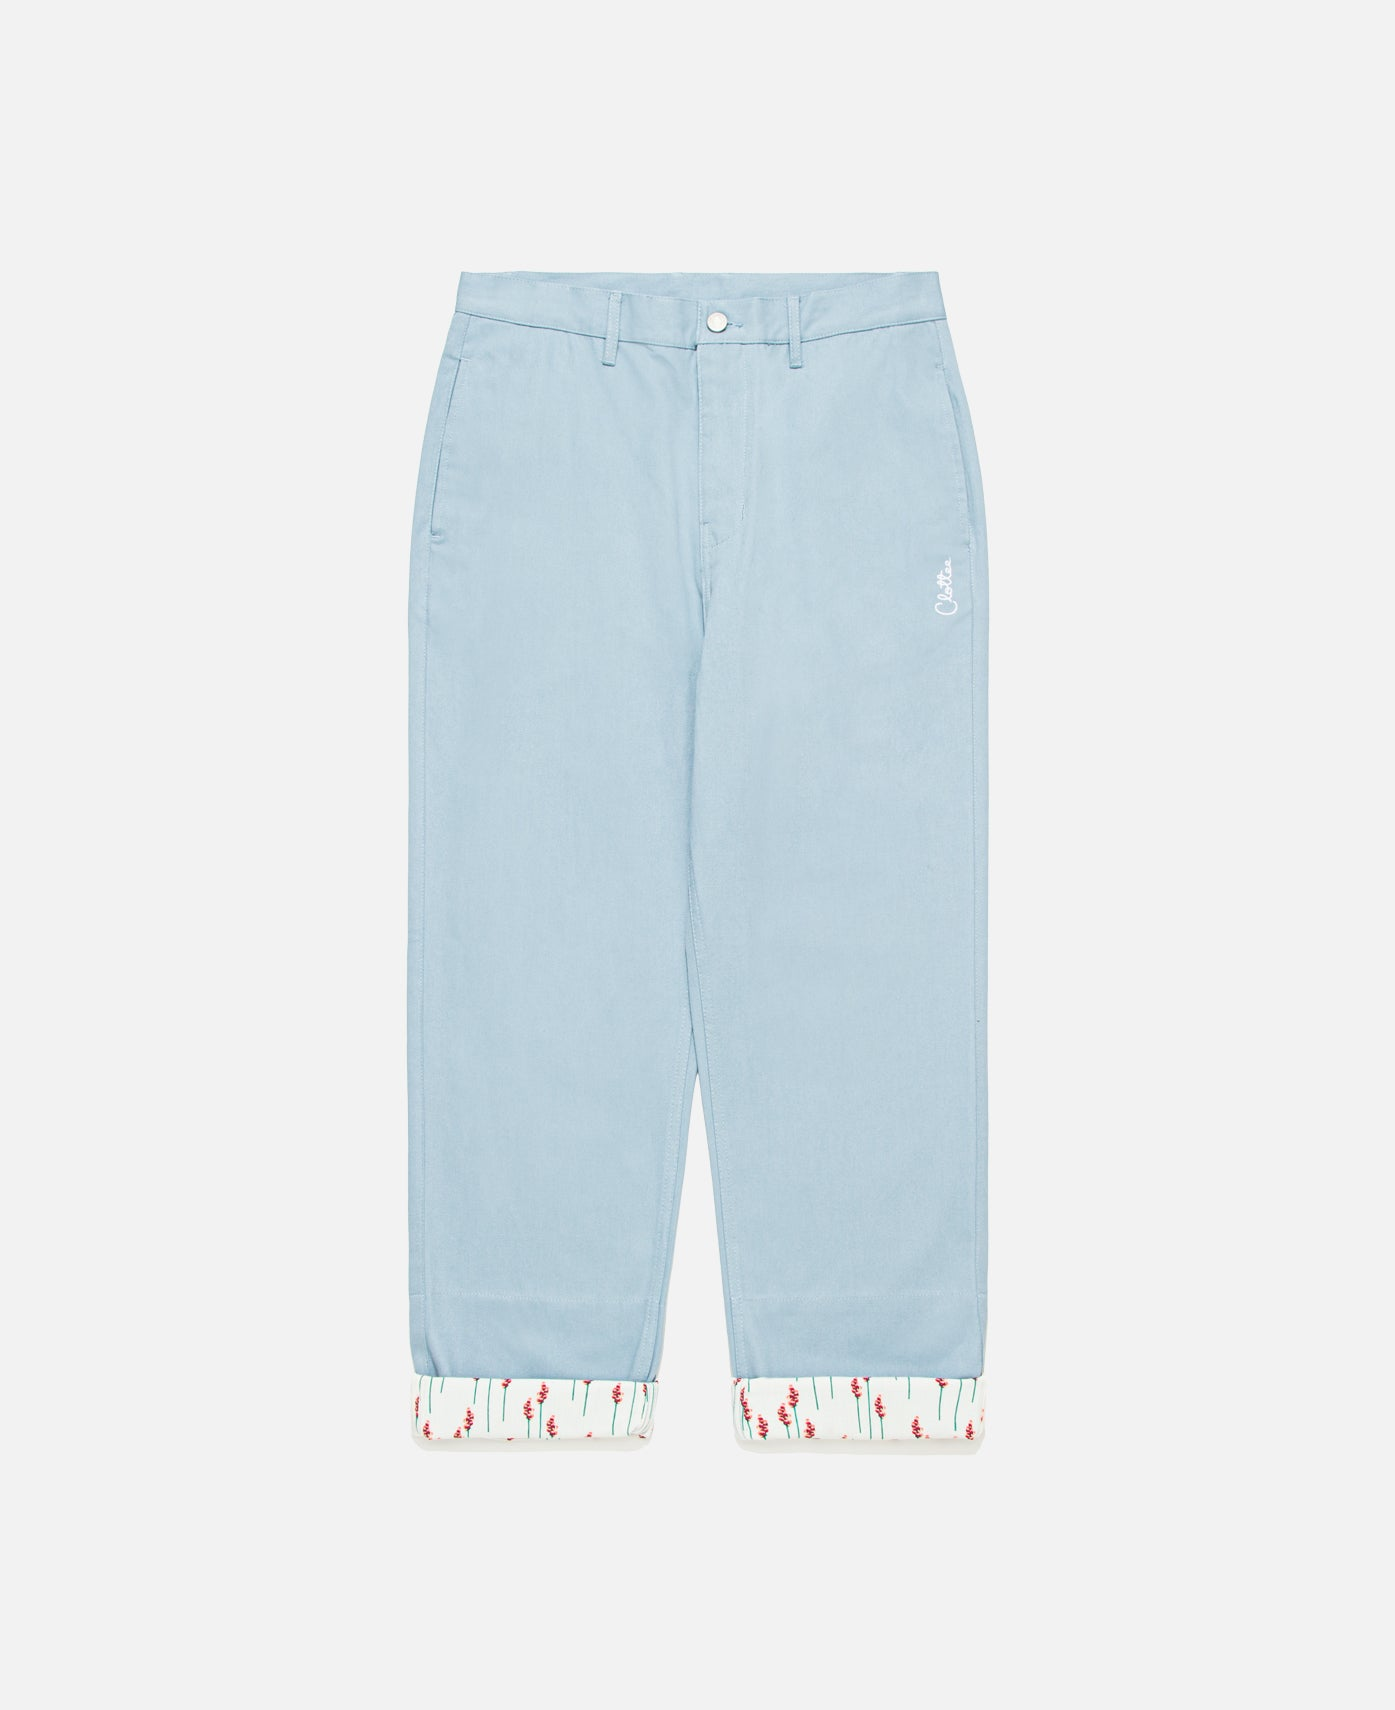 Contrast Cuff Pants (Blue)